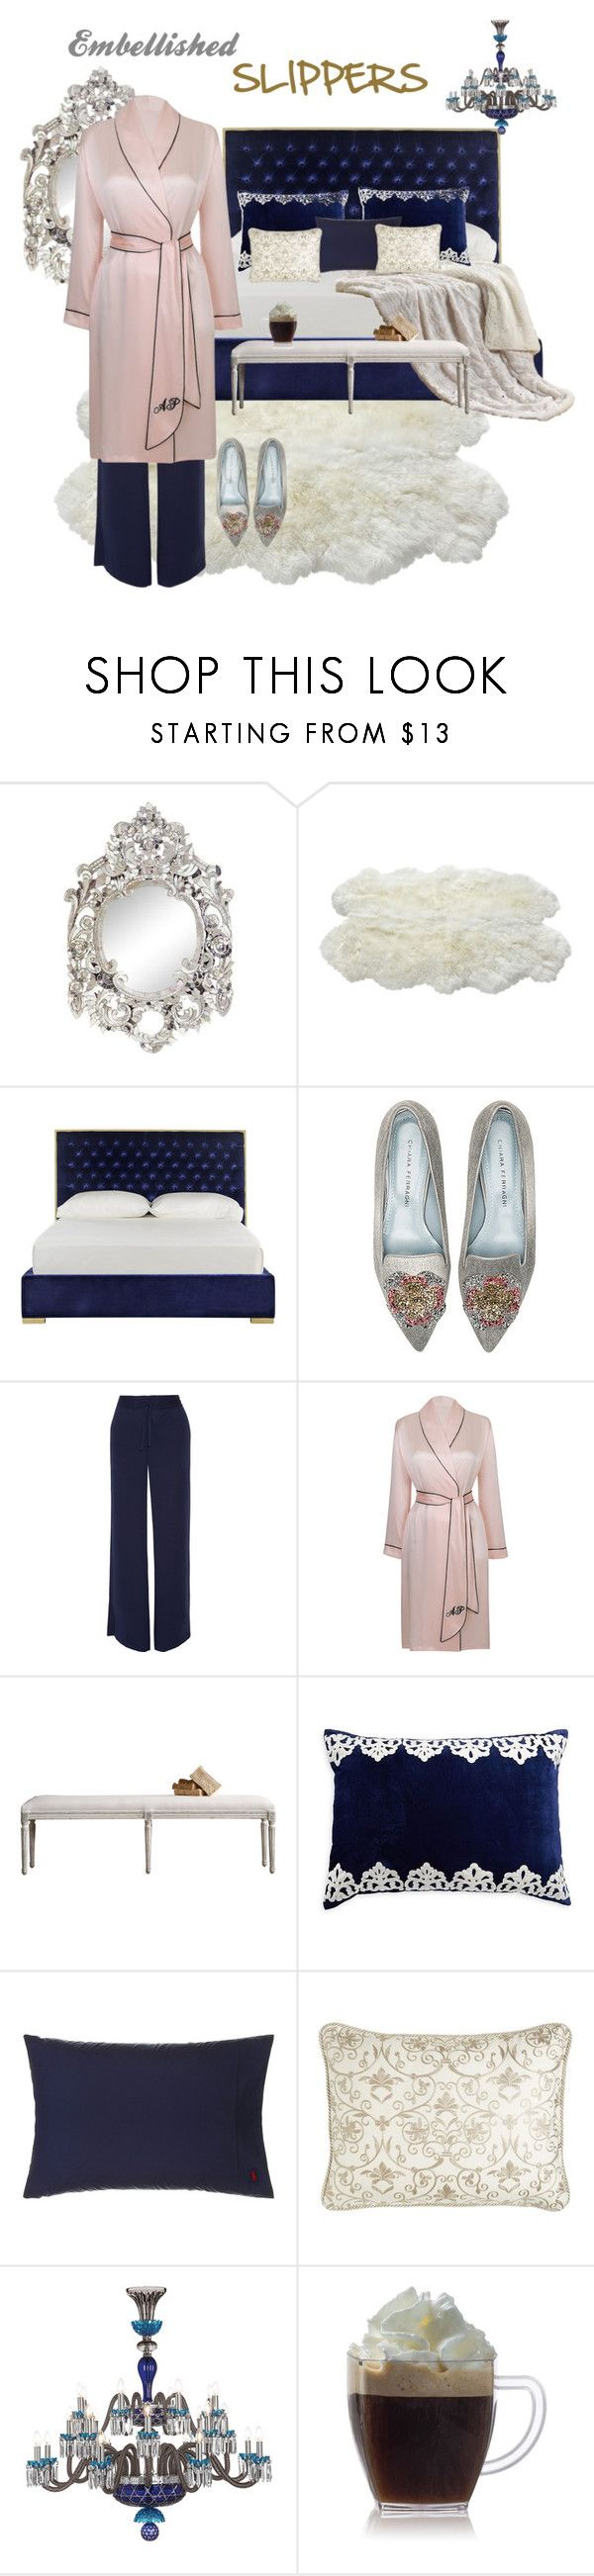 """""""Cocoa and Candy"""" by mary-kay-de-jesus ❤ liked on Polyvore featuring Safavieh, Chiara Ferragni, Diane Von Furstenberg, Agent Provocateur, Callisto Home, Ralph Lauren Home, Isabella Collection and Saint-Louis Crystal"""